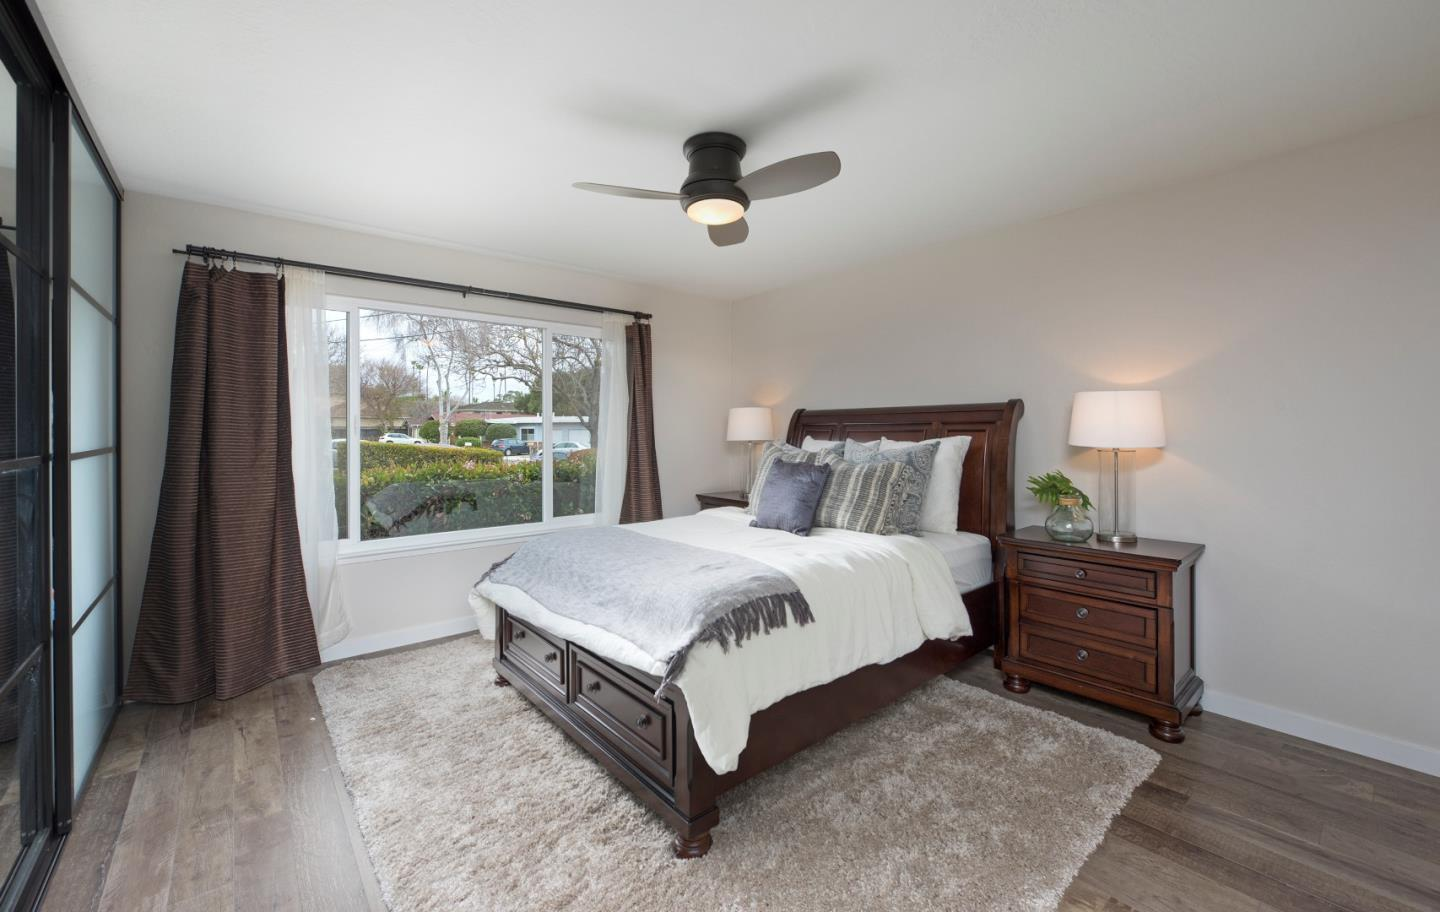 67 Gladys Avenue Mountain View, California 94043, 2 Bedrooms Bedrooms, ,2 BathroomsBathrooms,Residential,For Sale,67 Gladys Avenue,ML81738045